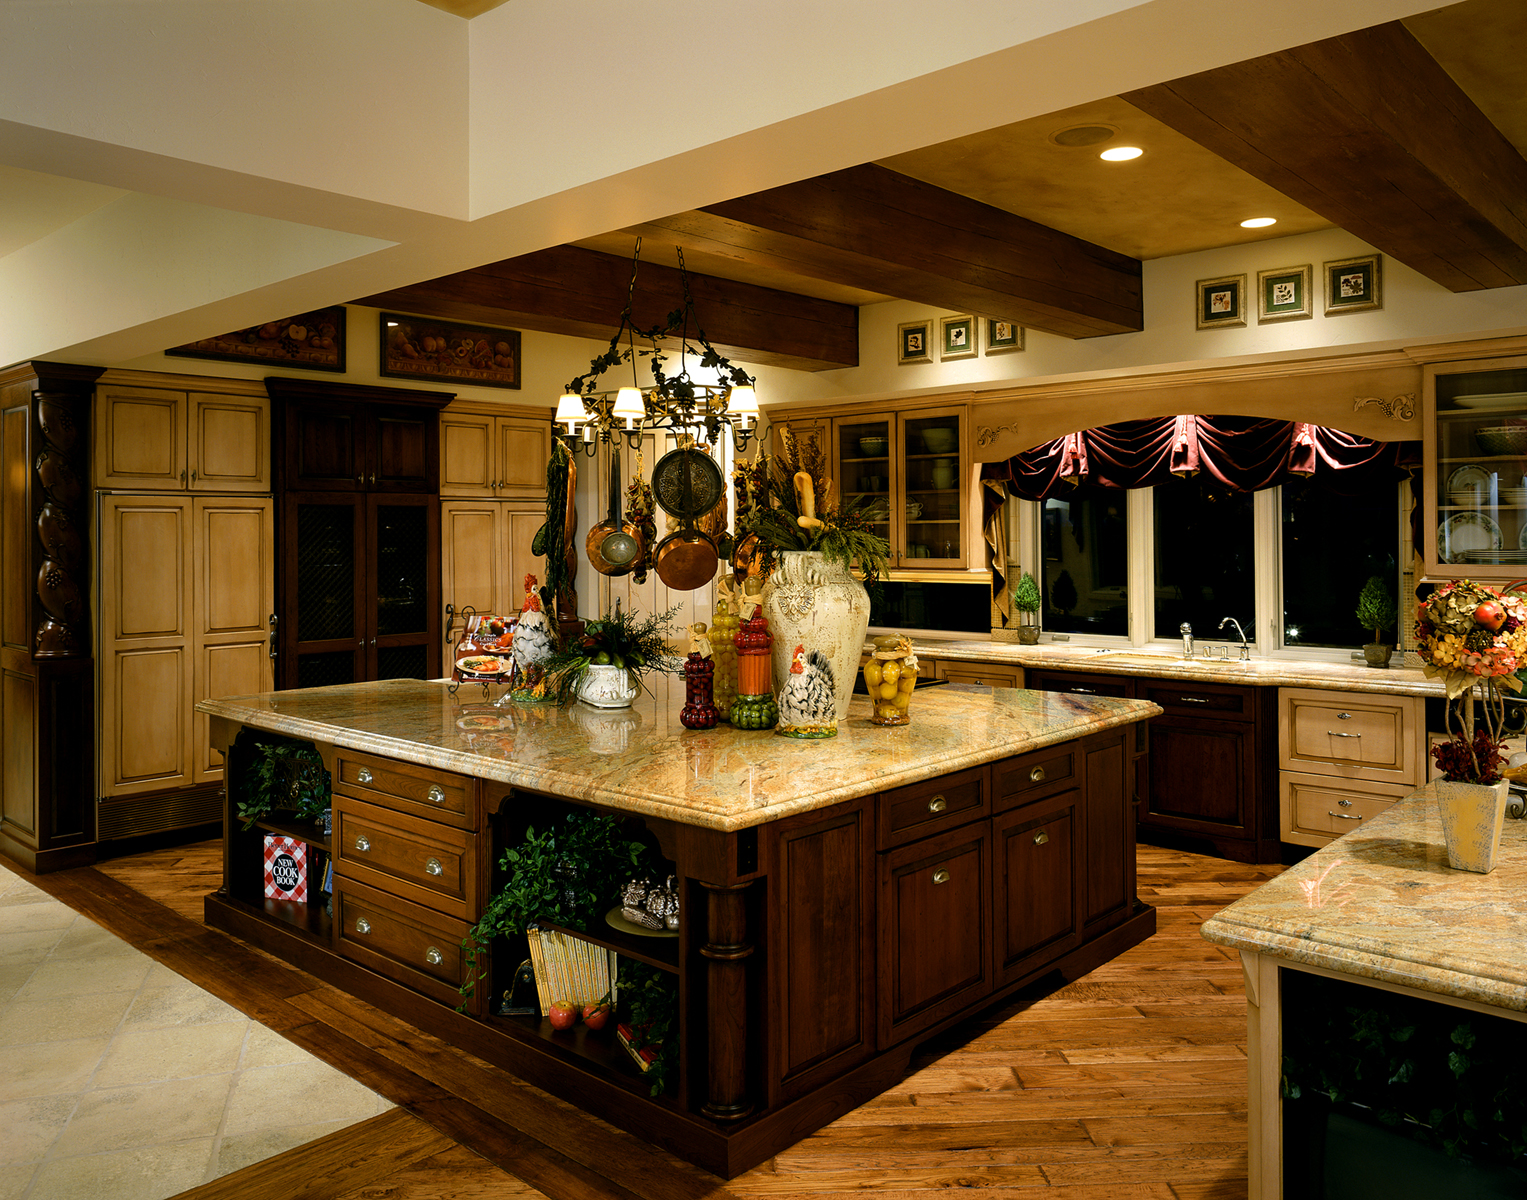 Dickerson kitchen 012